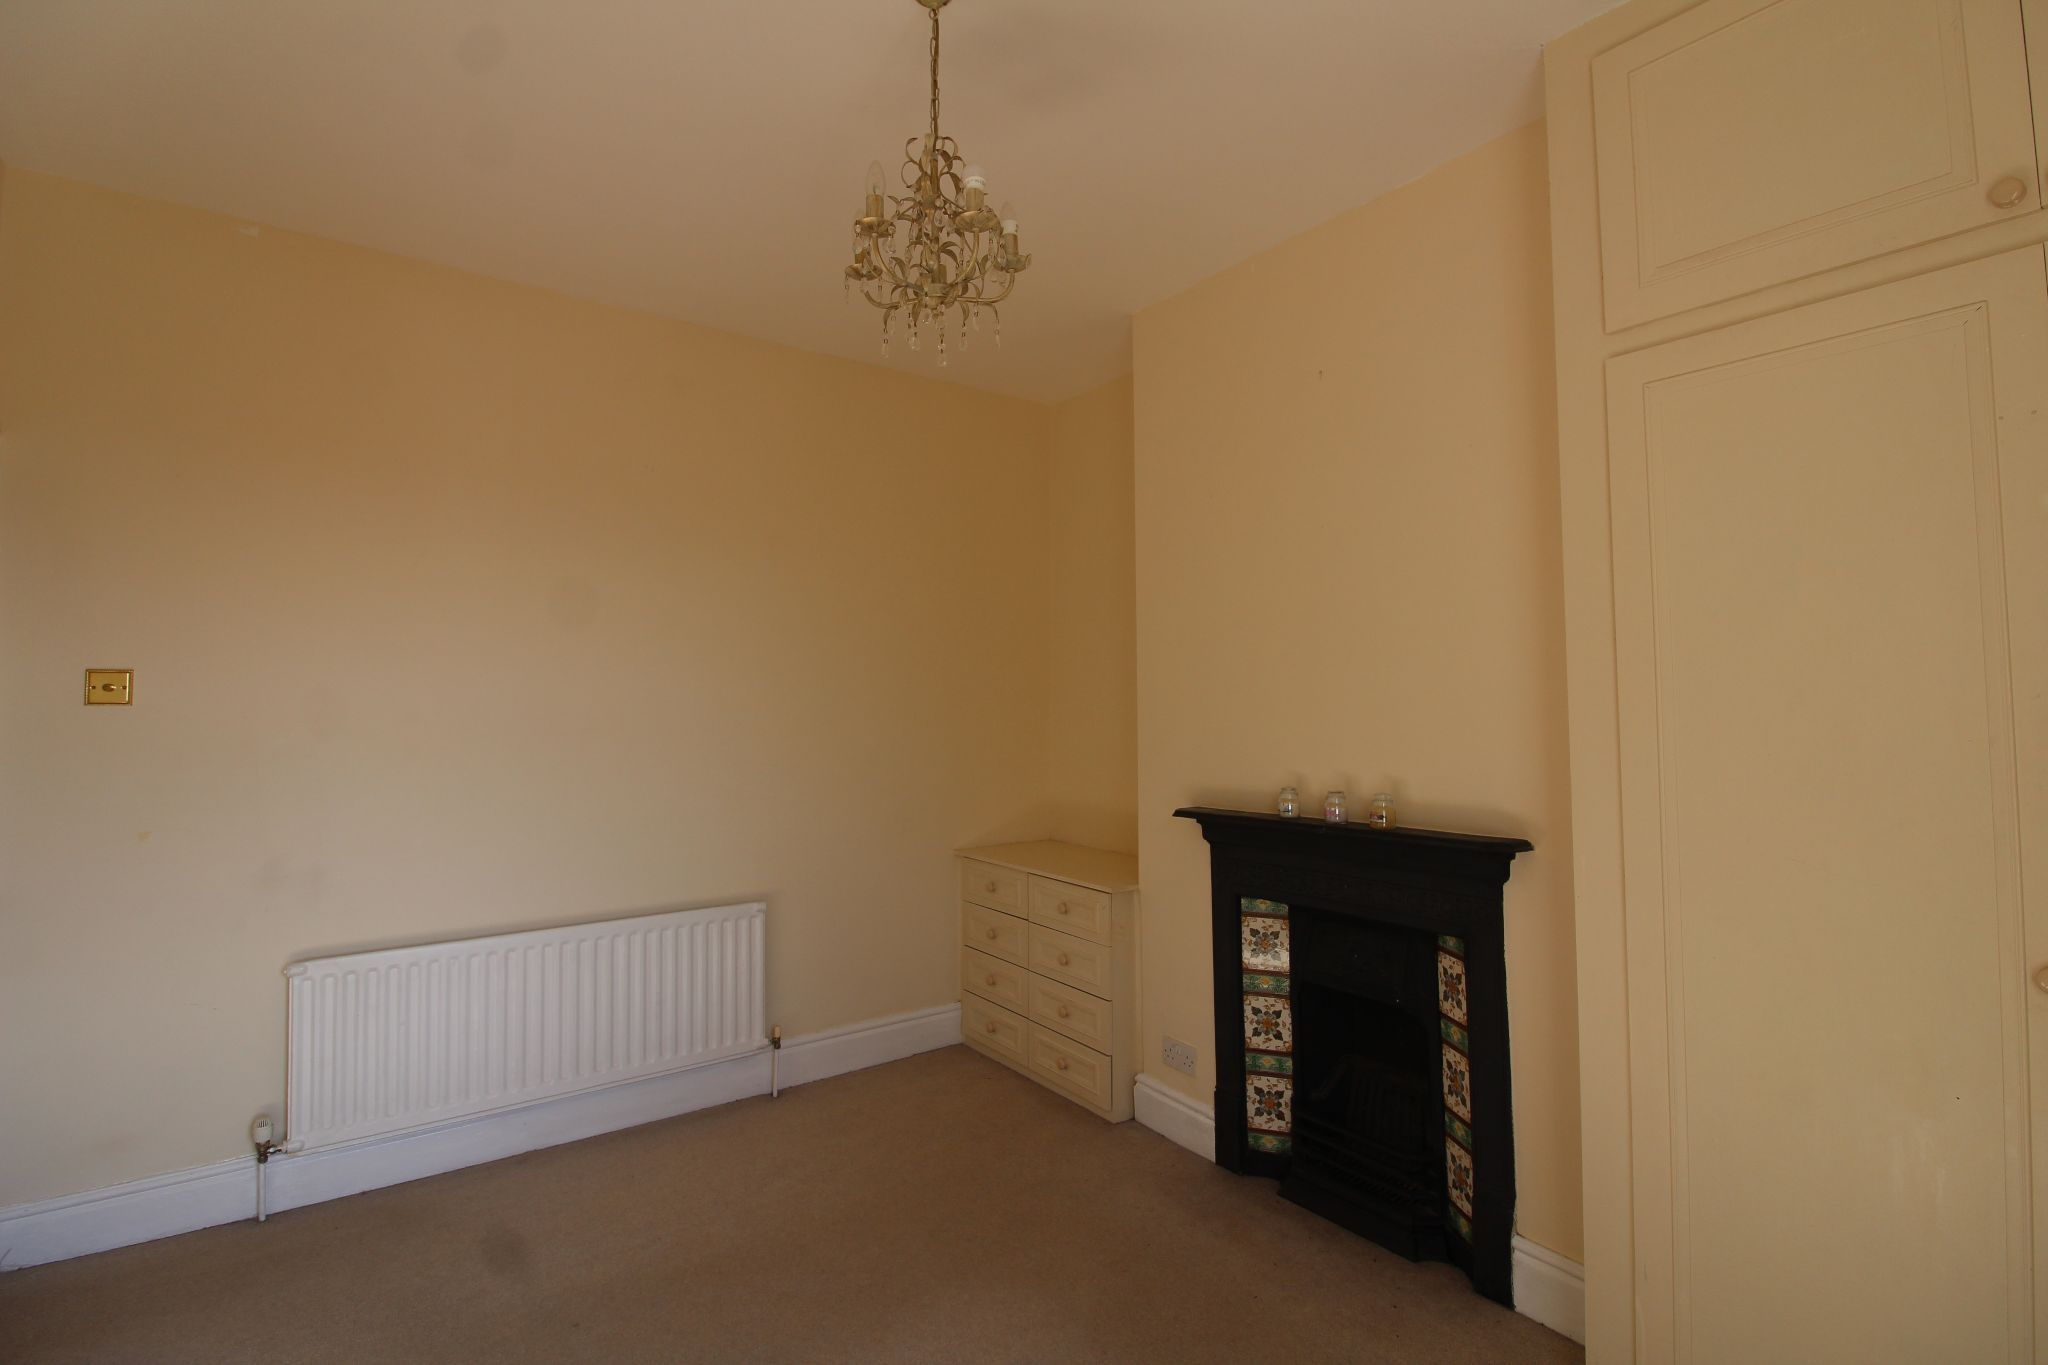 4 bedroom mid terraced house Sale Agreed in Willington - Photograph 31.